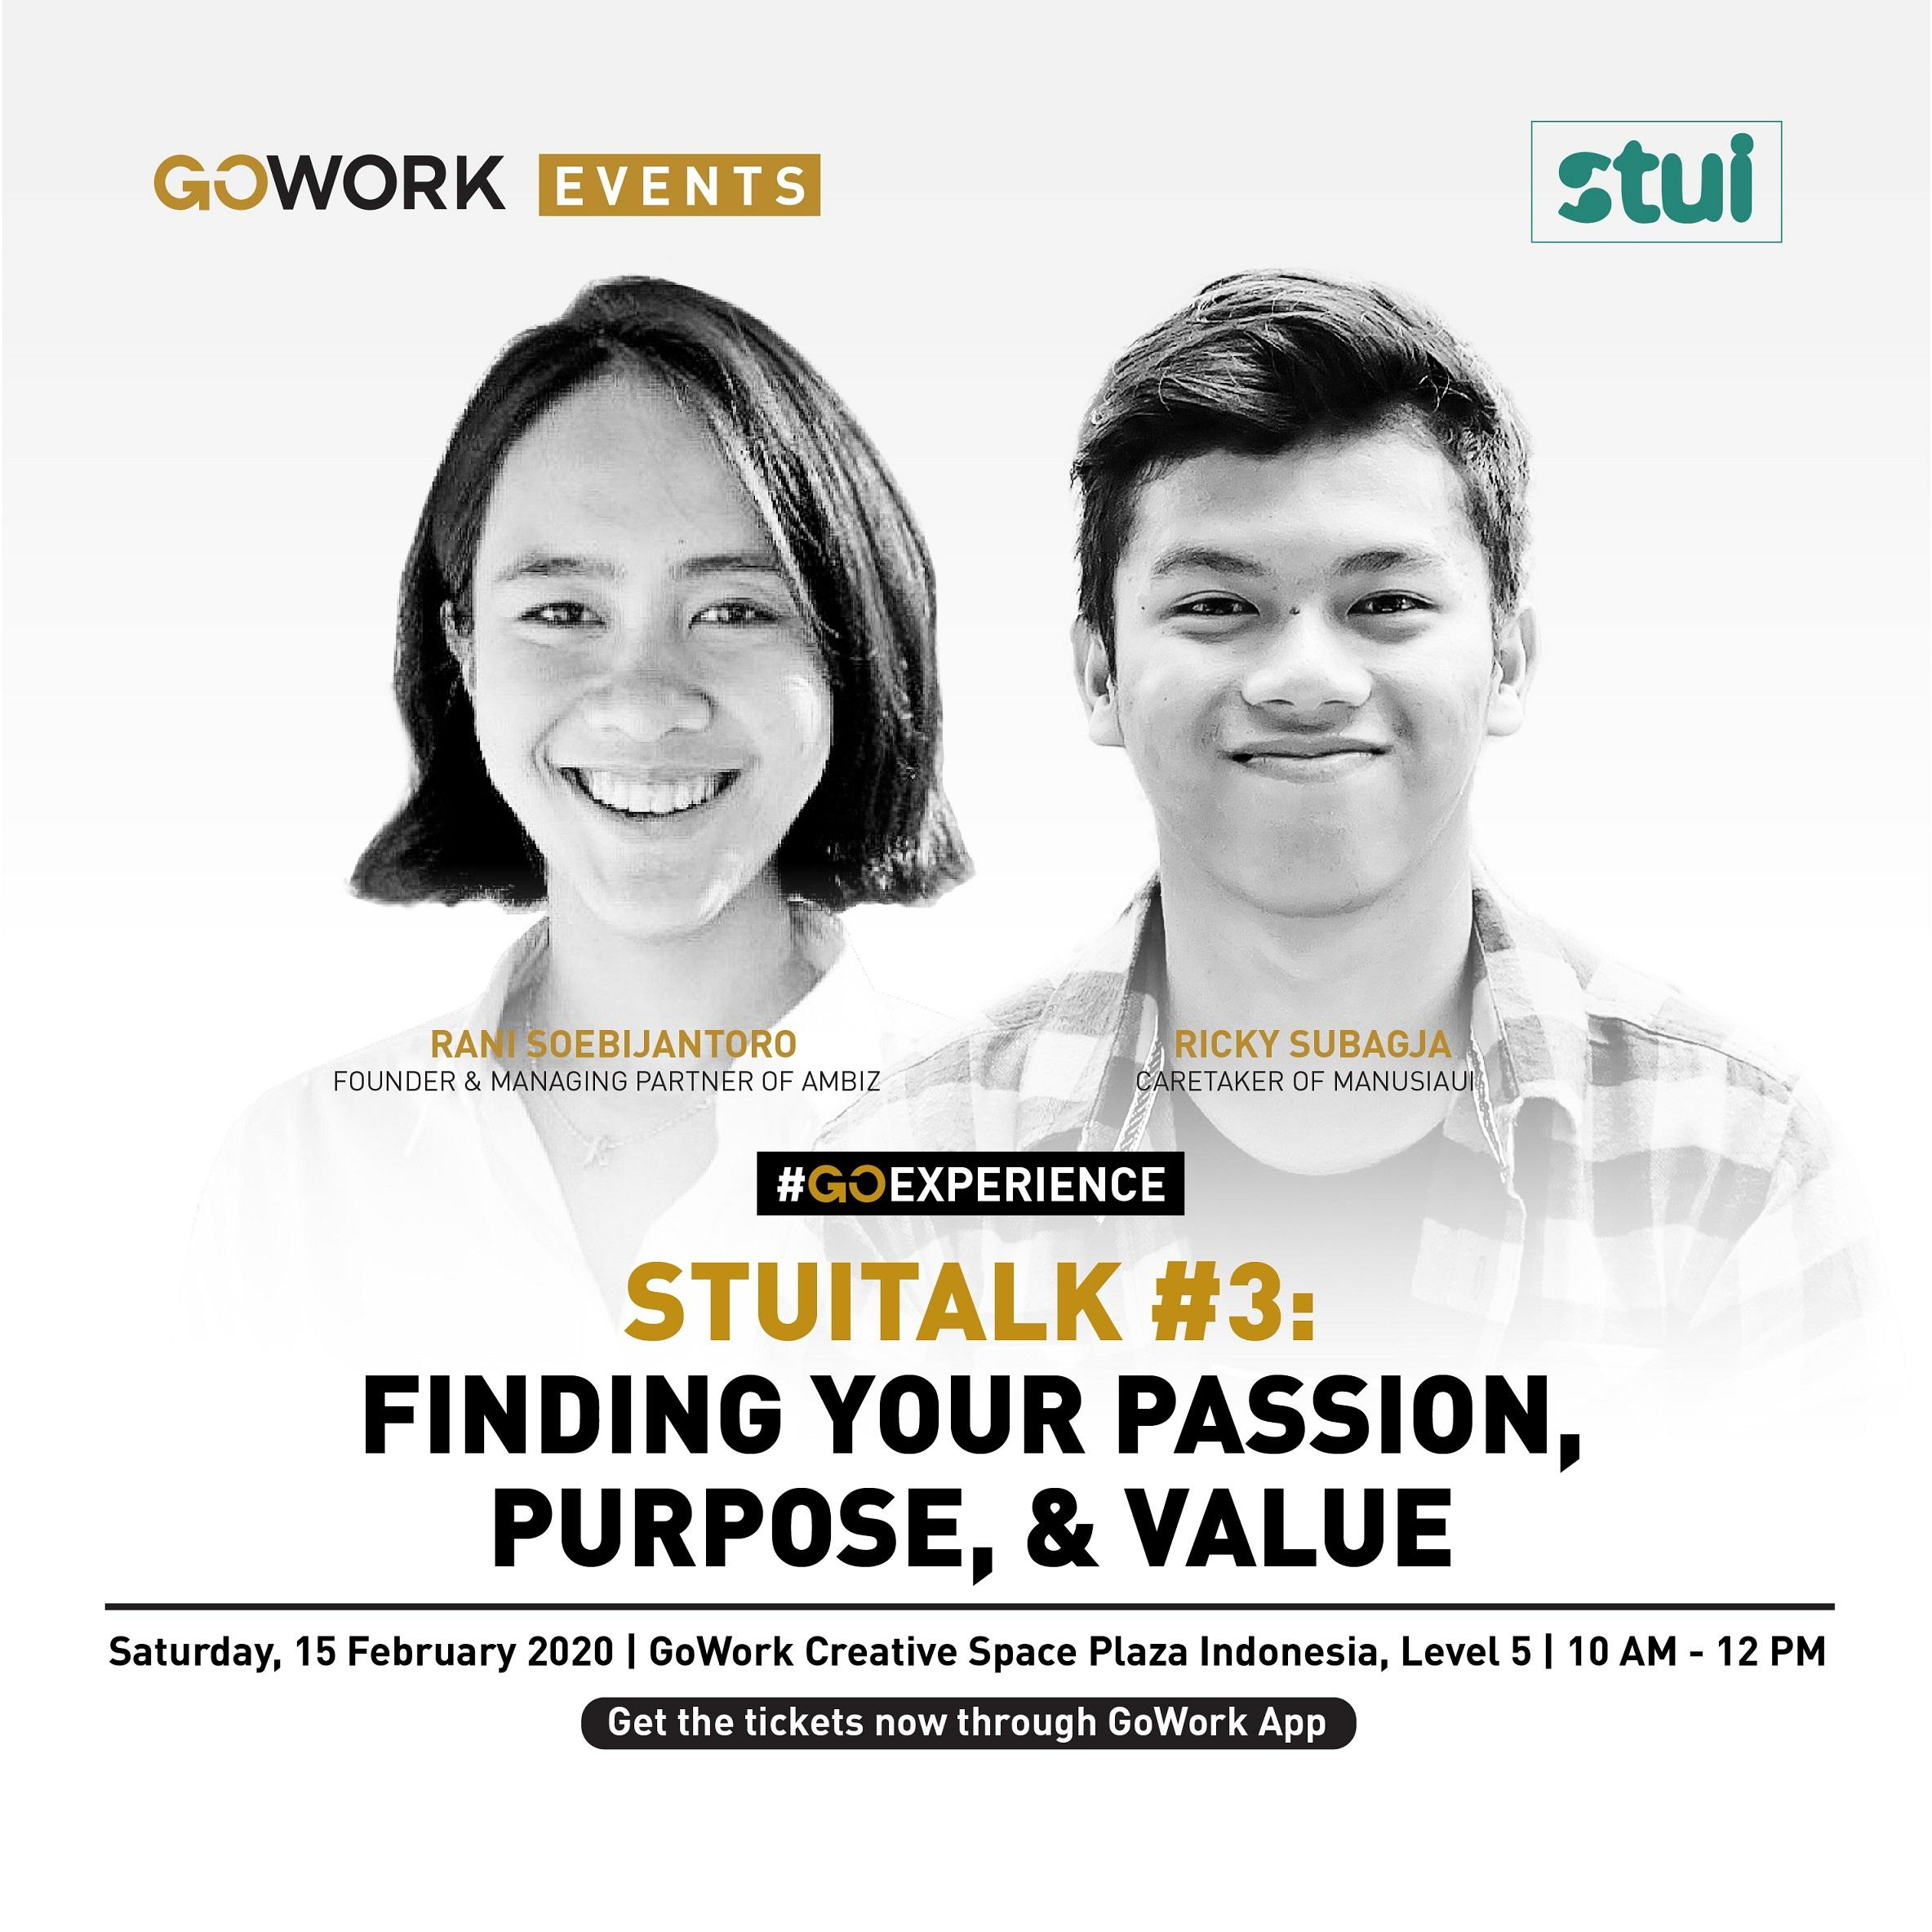 StuiTalk #3 : Finding your Passion, Purpose, Value